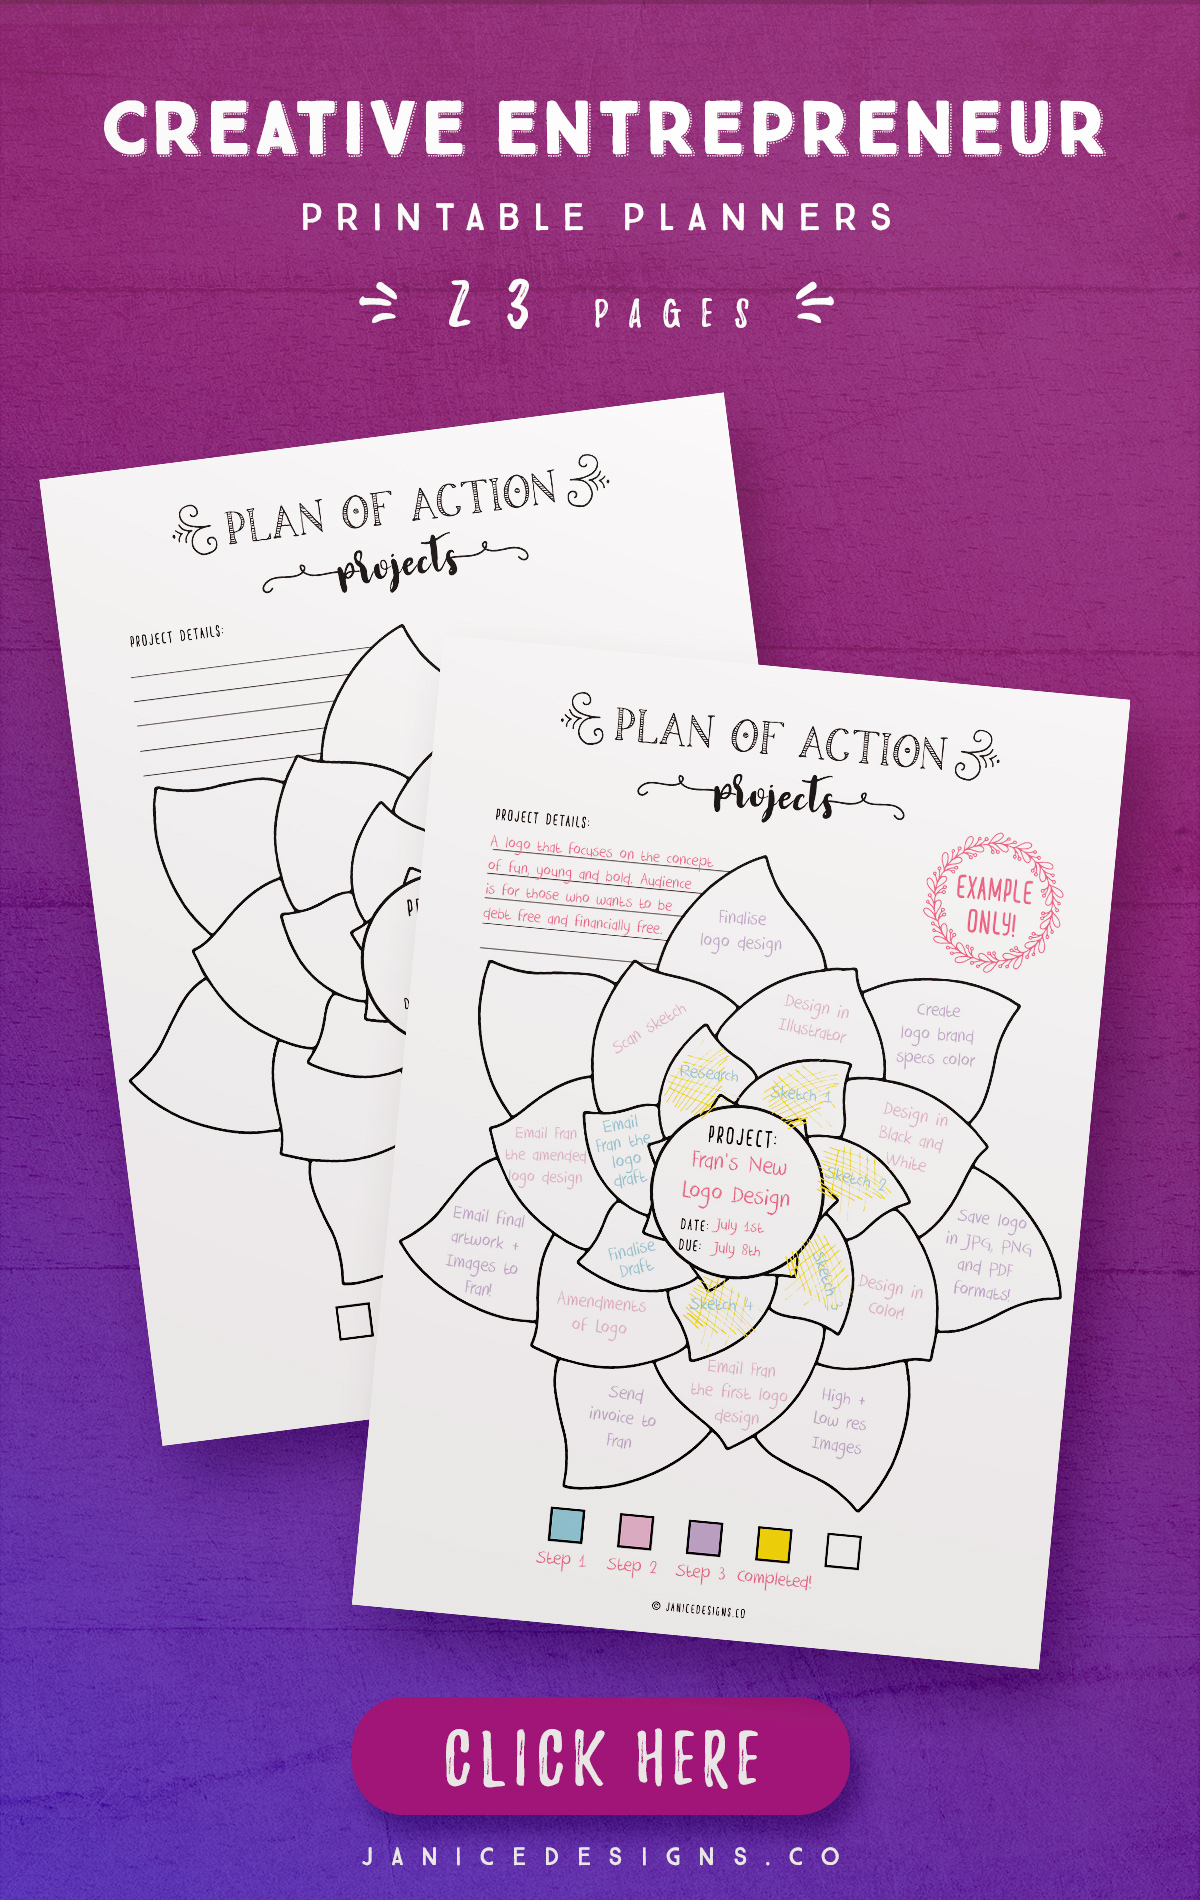 Creative Entrepreneur Printable Planners - 23 Pages example image 3